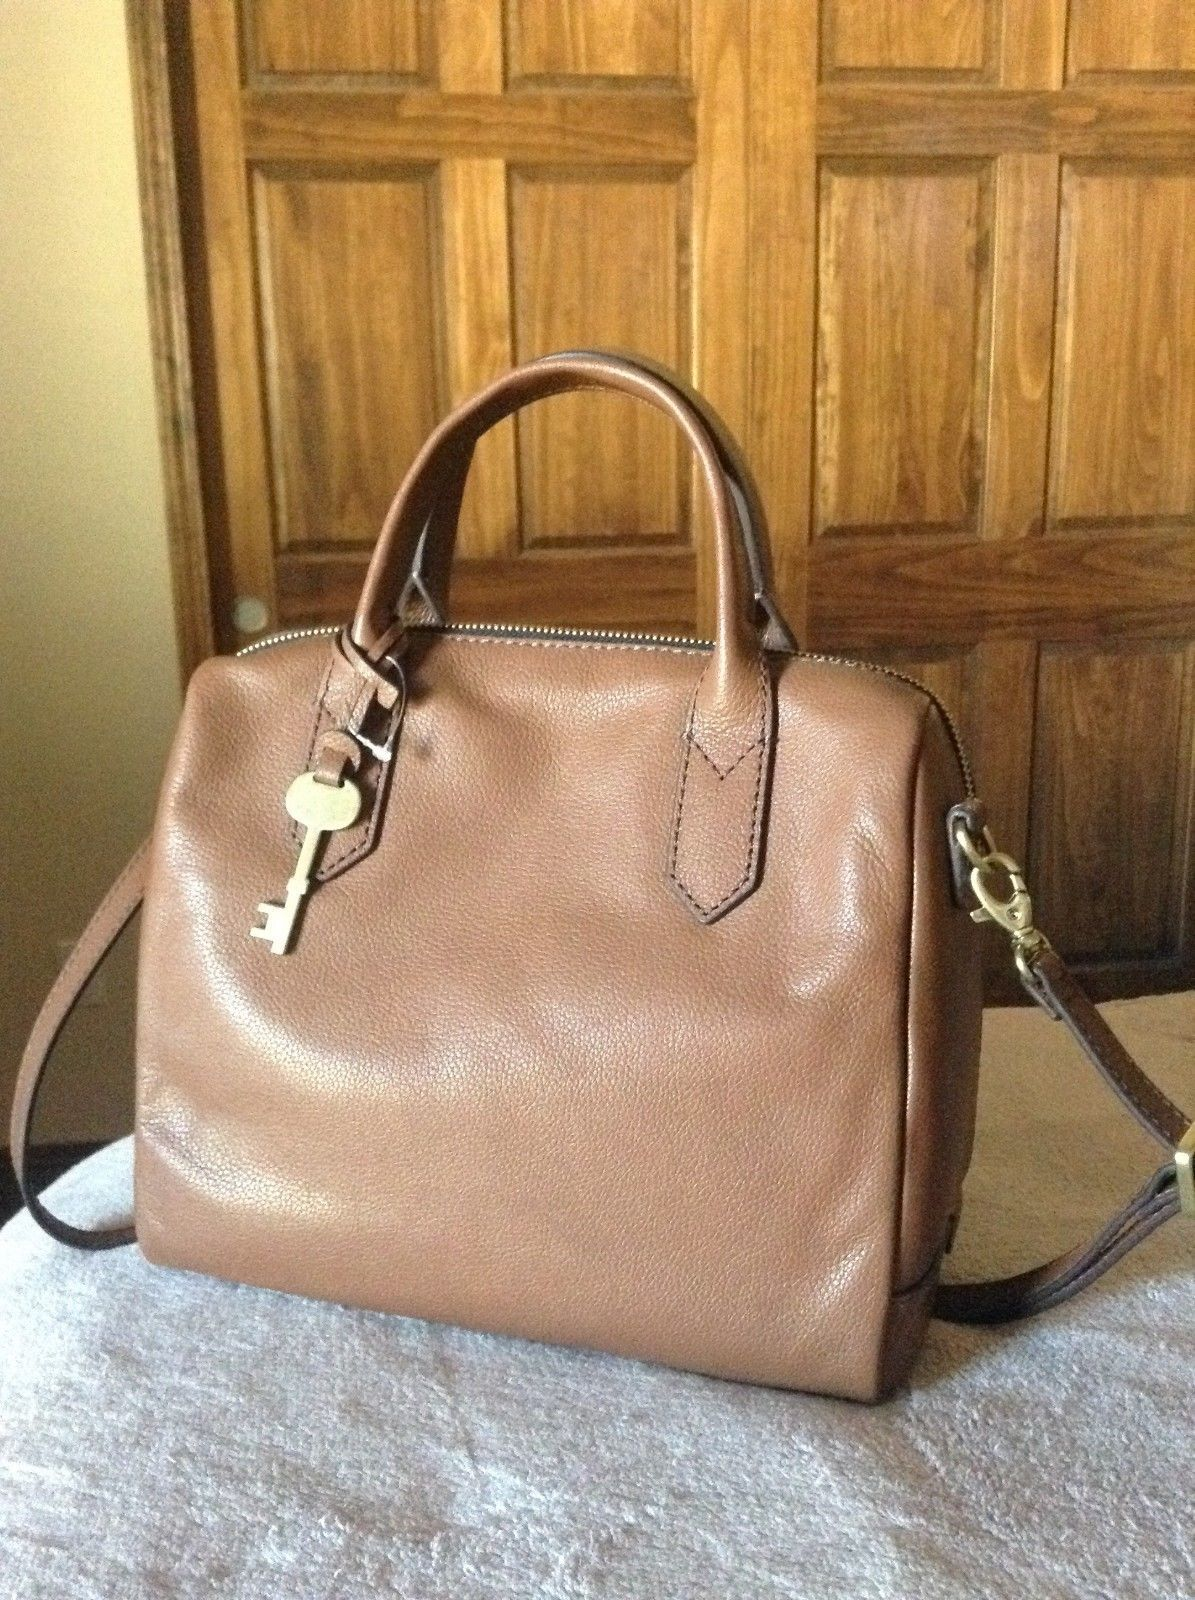 e6f50f4030 Fossil Fiona Satchel Brown Rt  181.44 w tax